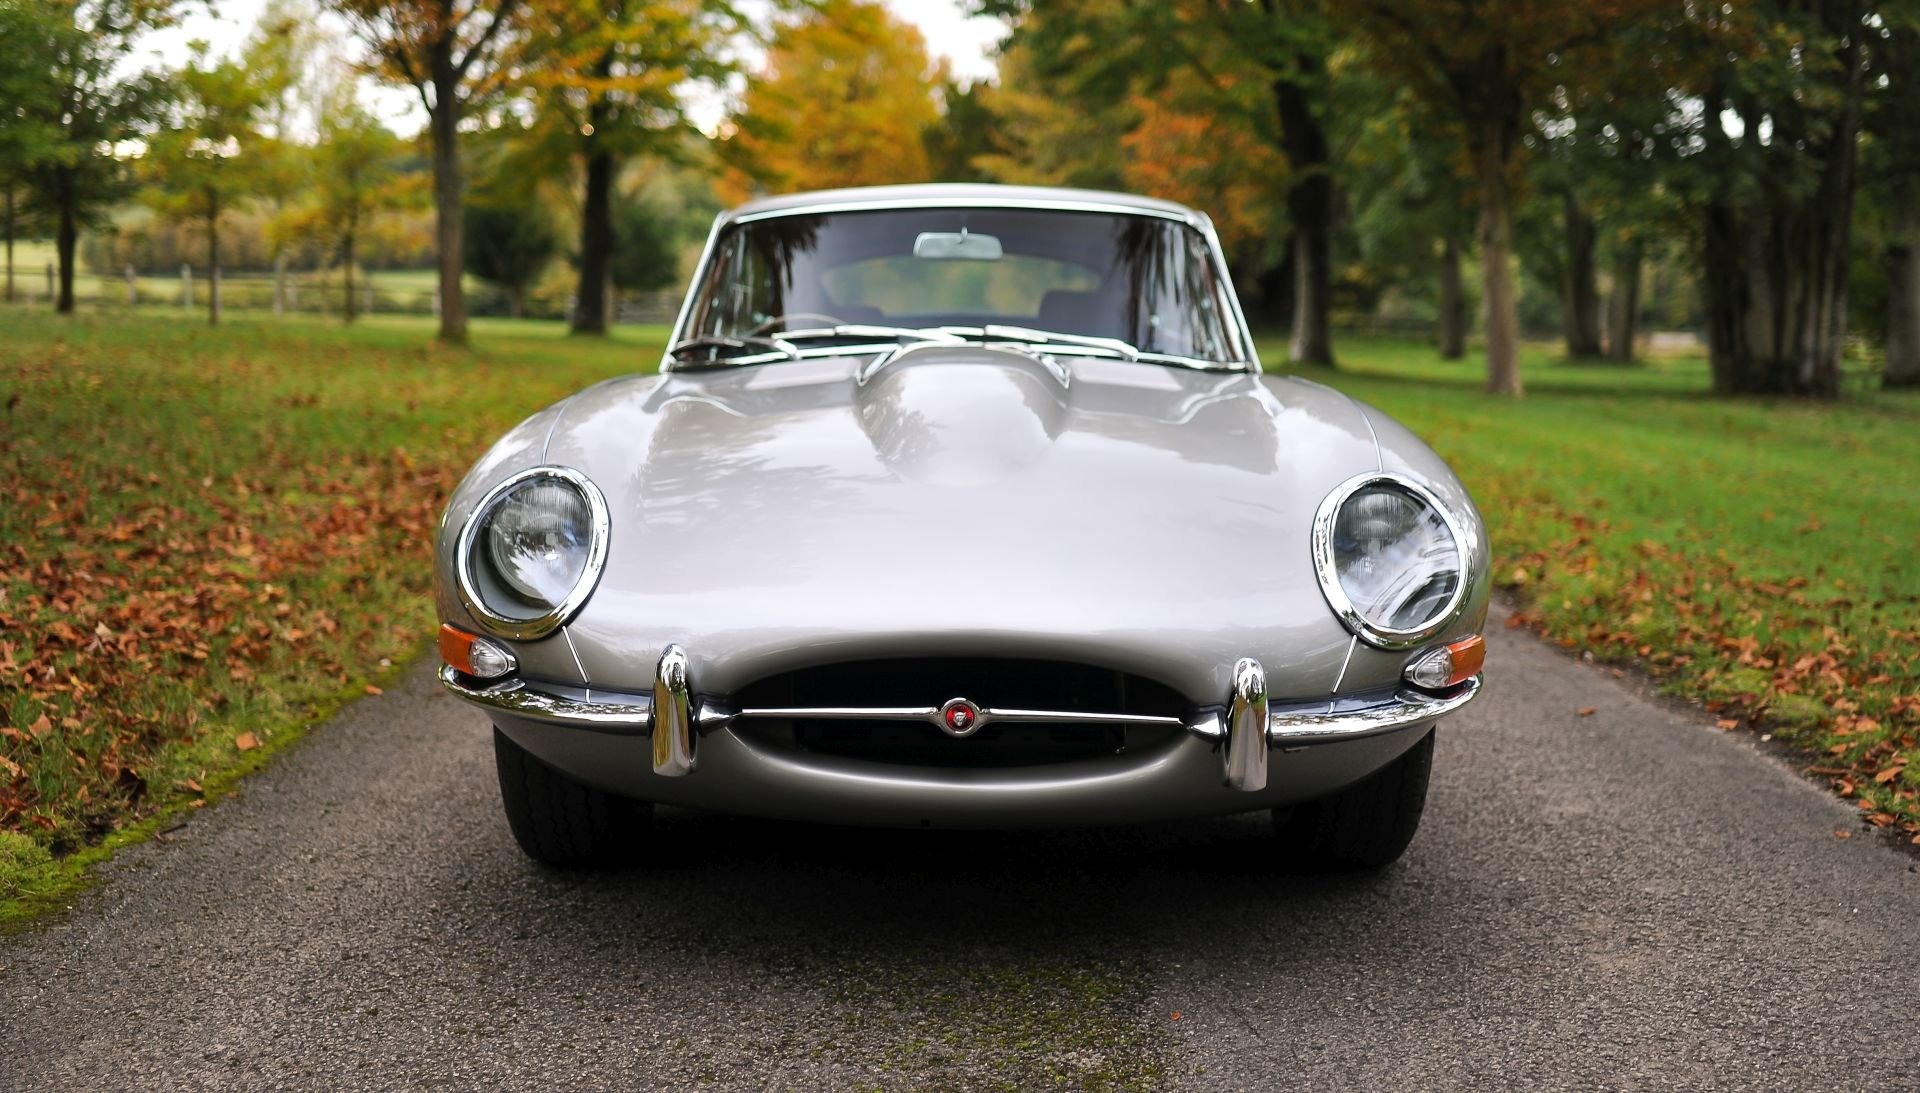 1967 Jaguar E-Type Coupe Series 1 4.2 Ltr  For Sale (picture 2 of 6)